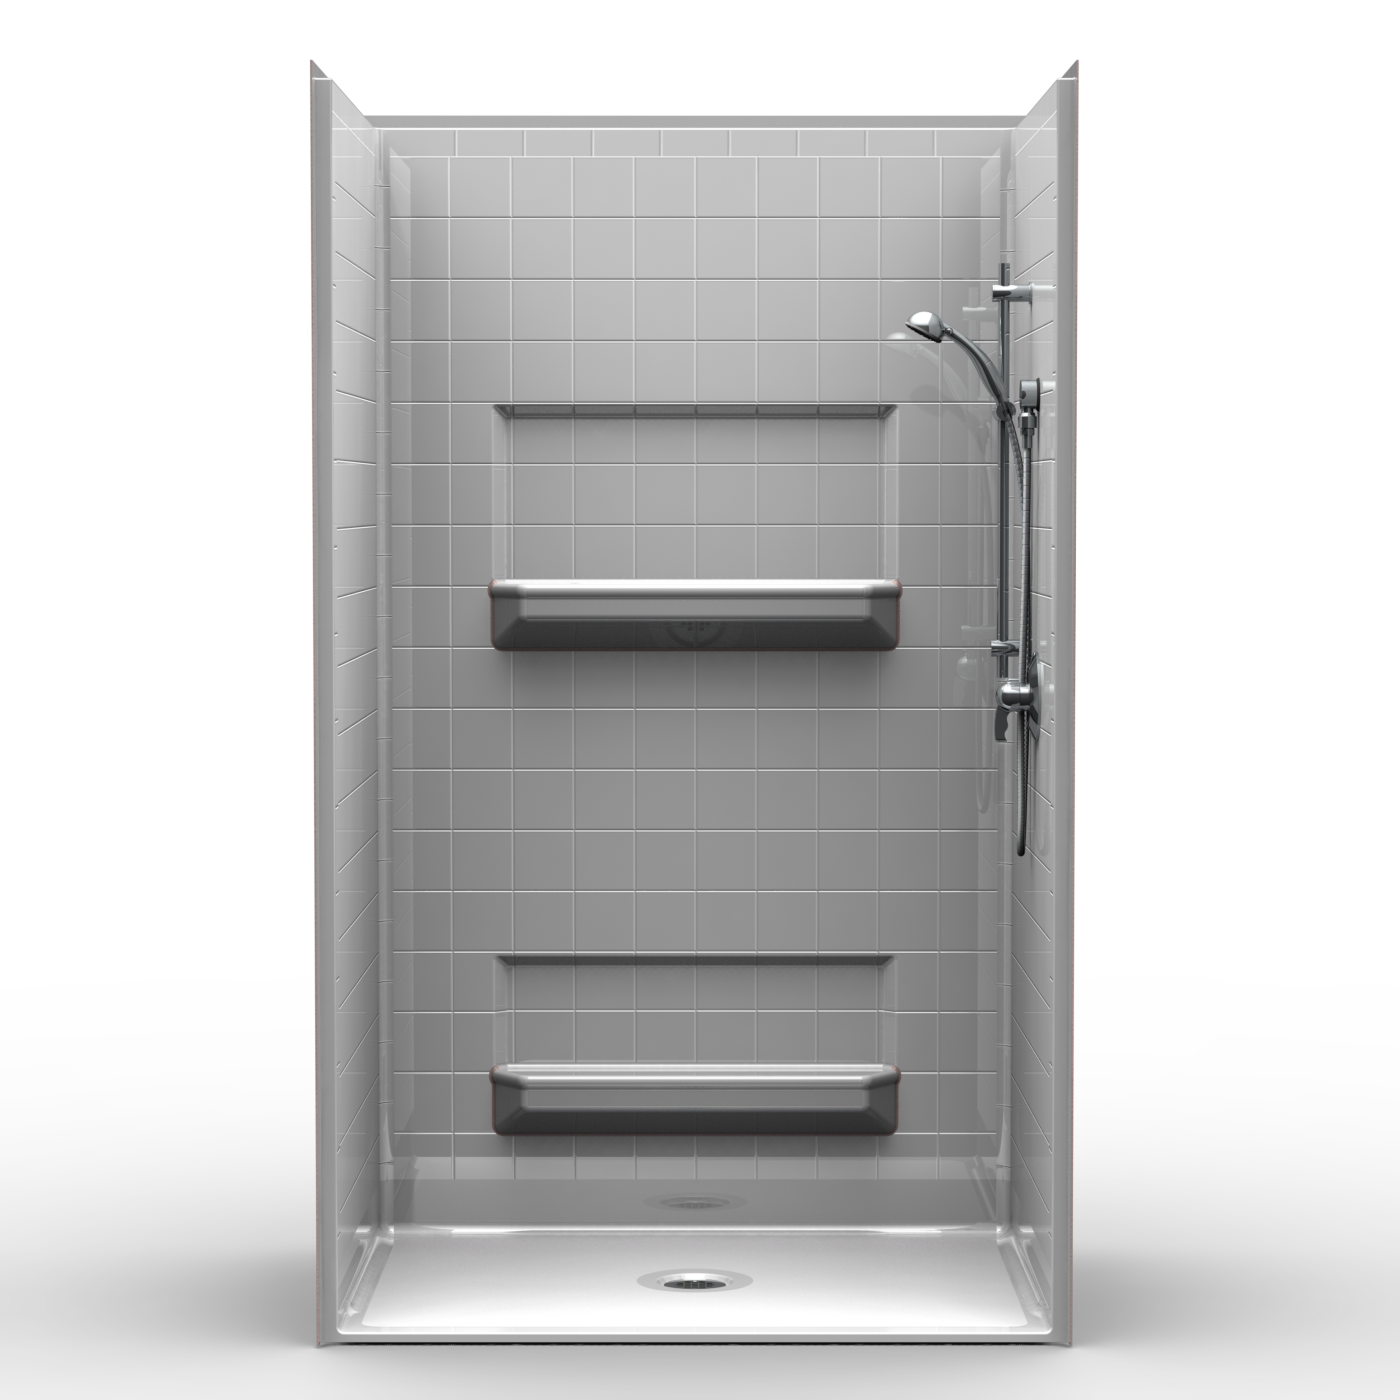 Salle De Bain Jaune Et Grise ~ A Fully Installed 48 Inch Shower Stall Without The Wait Orca